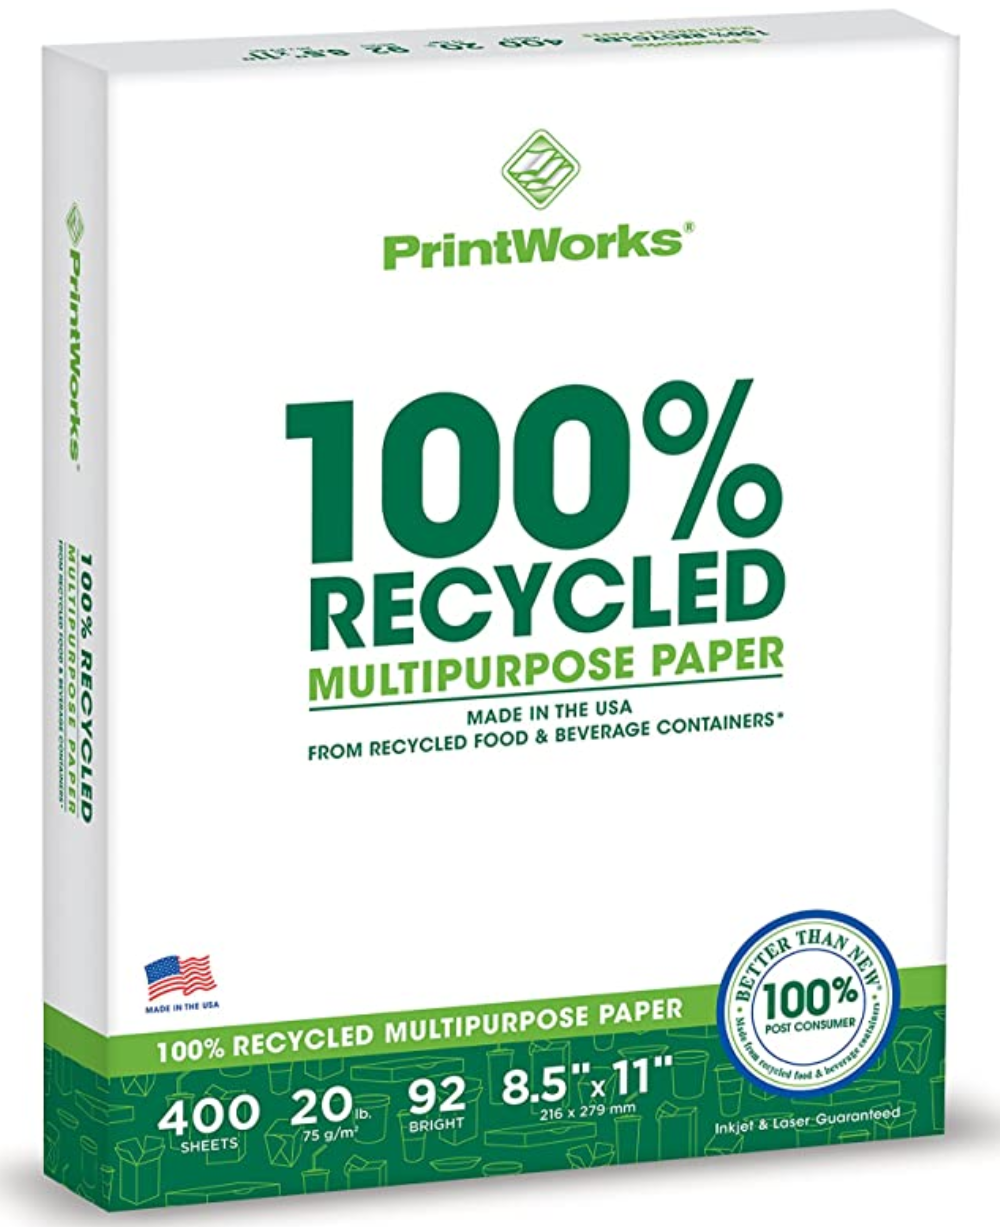 PrintWorks Recycled Printer Paper - Any Company Can Implement These Go Green Ideas